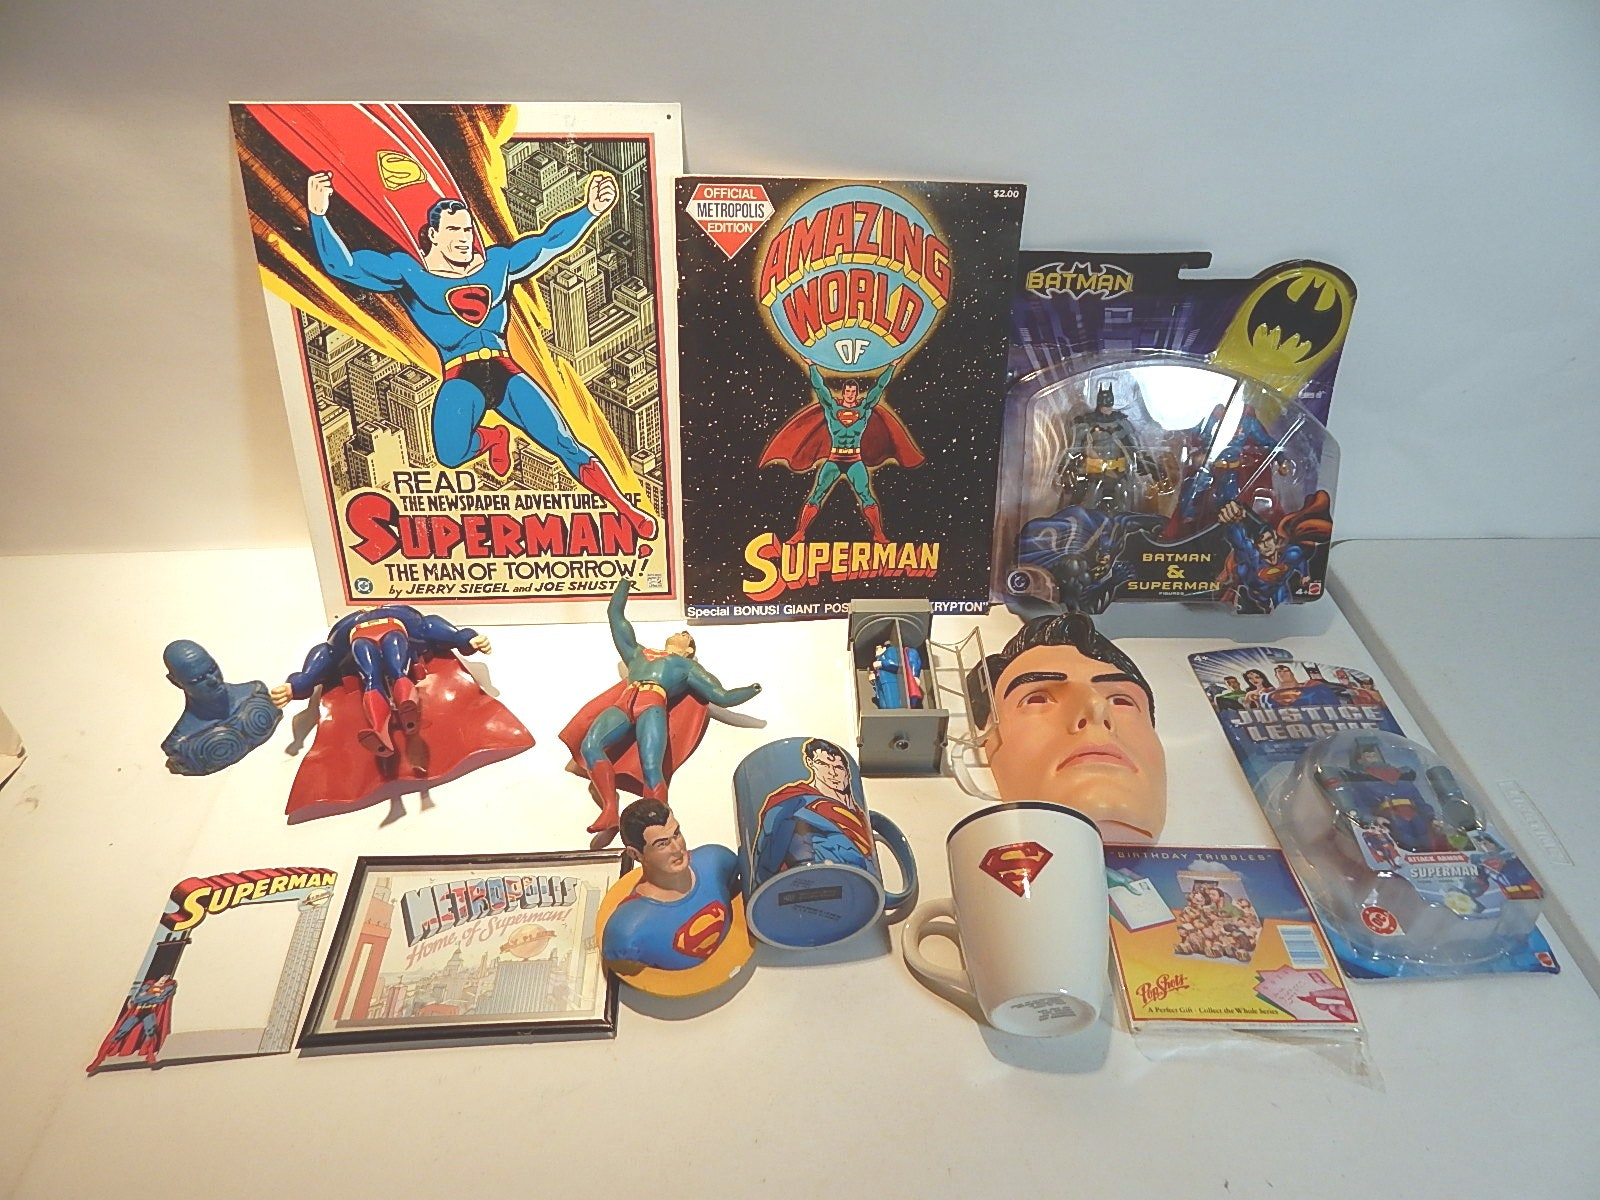 Assortment of Superman Memorabilia